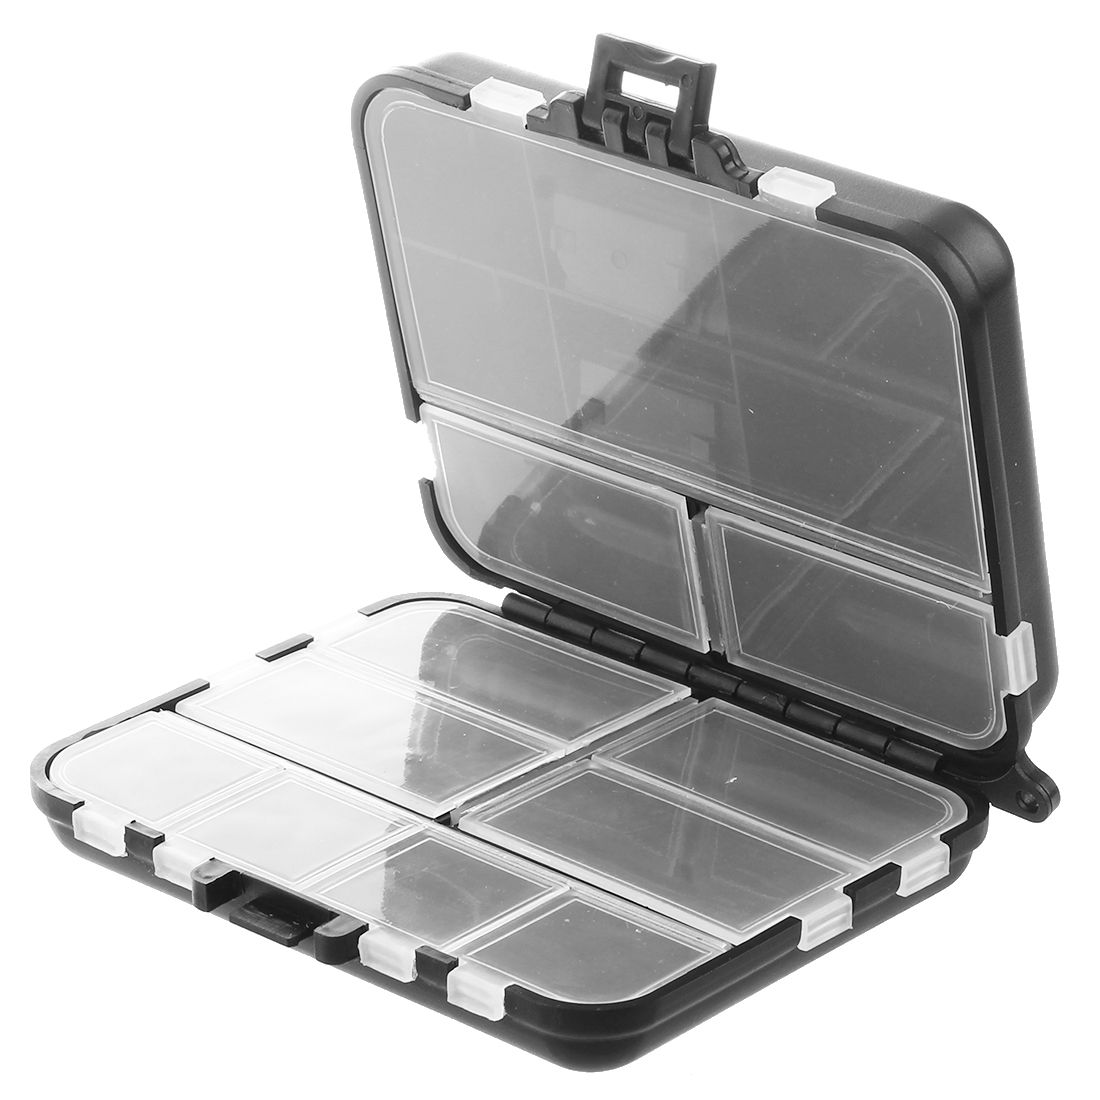 Waterproof Eco-Friendly Fishing Tool Lure Bait Tackle Storage Box Case Container With 26 Compartments